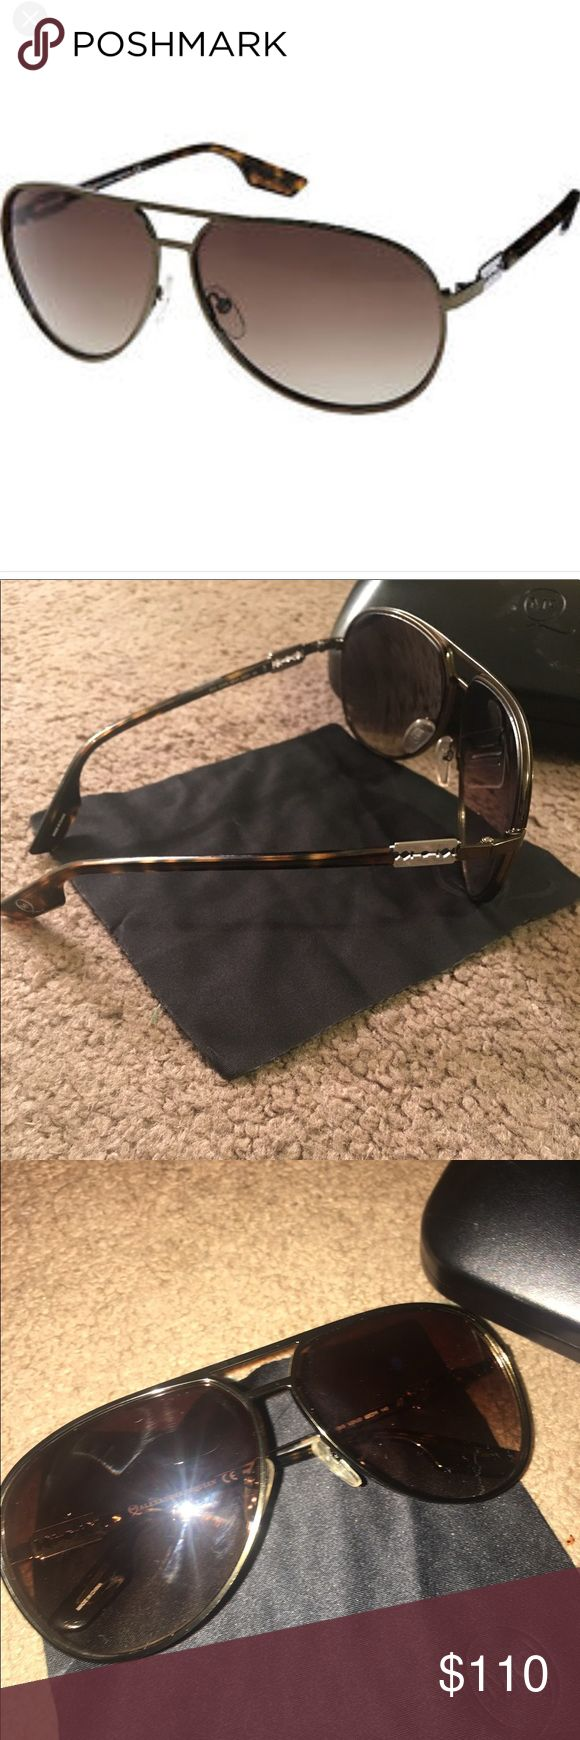 Alexander McQueen ( Razor) Sunglasses Alexander McQueen ( Razor) Sunglasses brown wore twice bought from Saks a year ago comes with original case and cleaning clothes excellent shape no scratches. More pics if needed Alexander McQueen Accessories Sunglasses